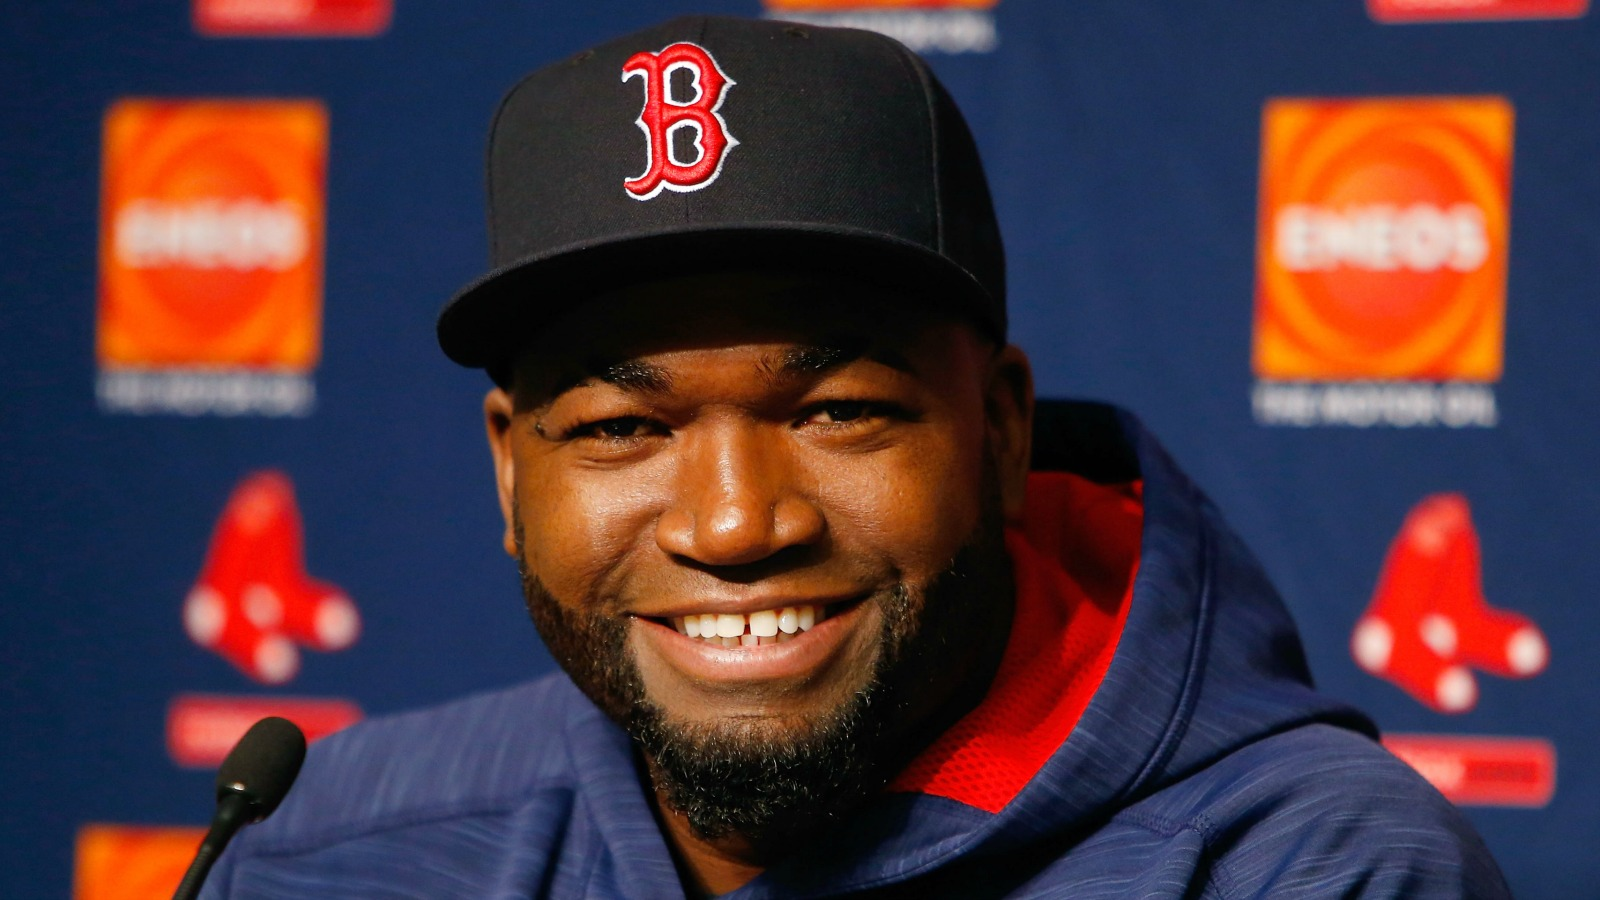 Red Sox star David Ortiz sounds off on retirement, steroids & more